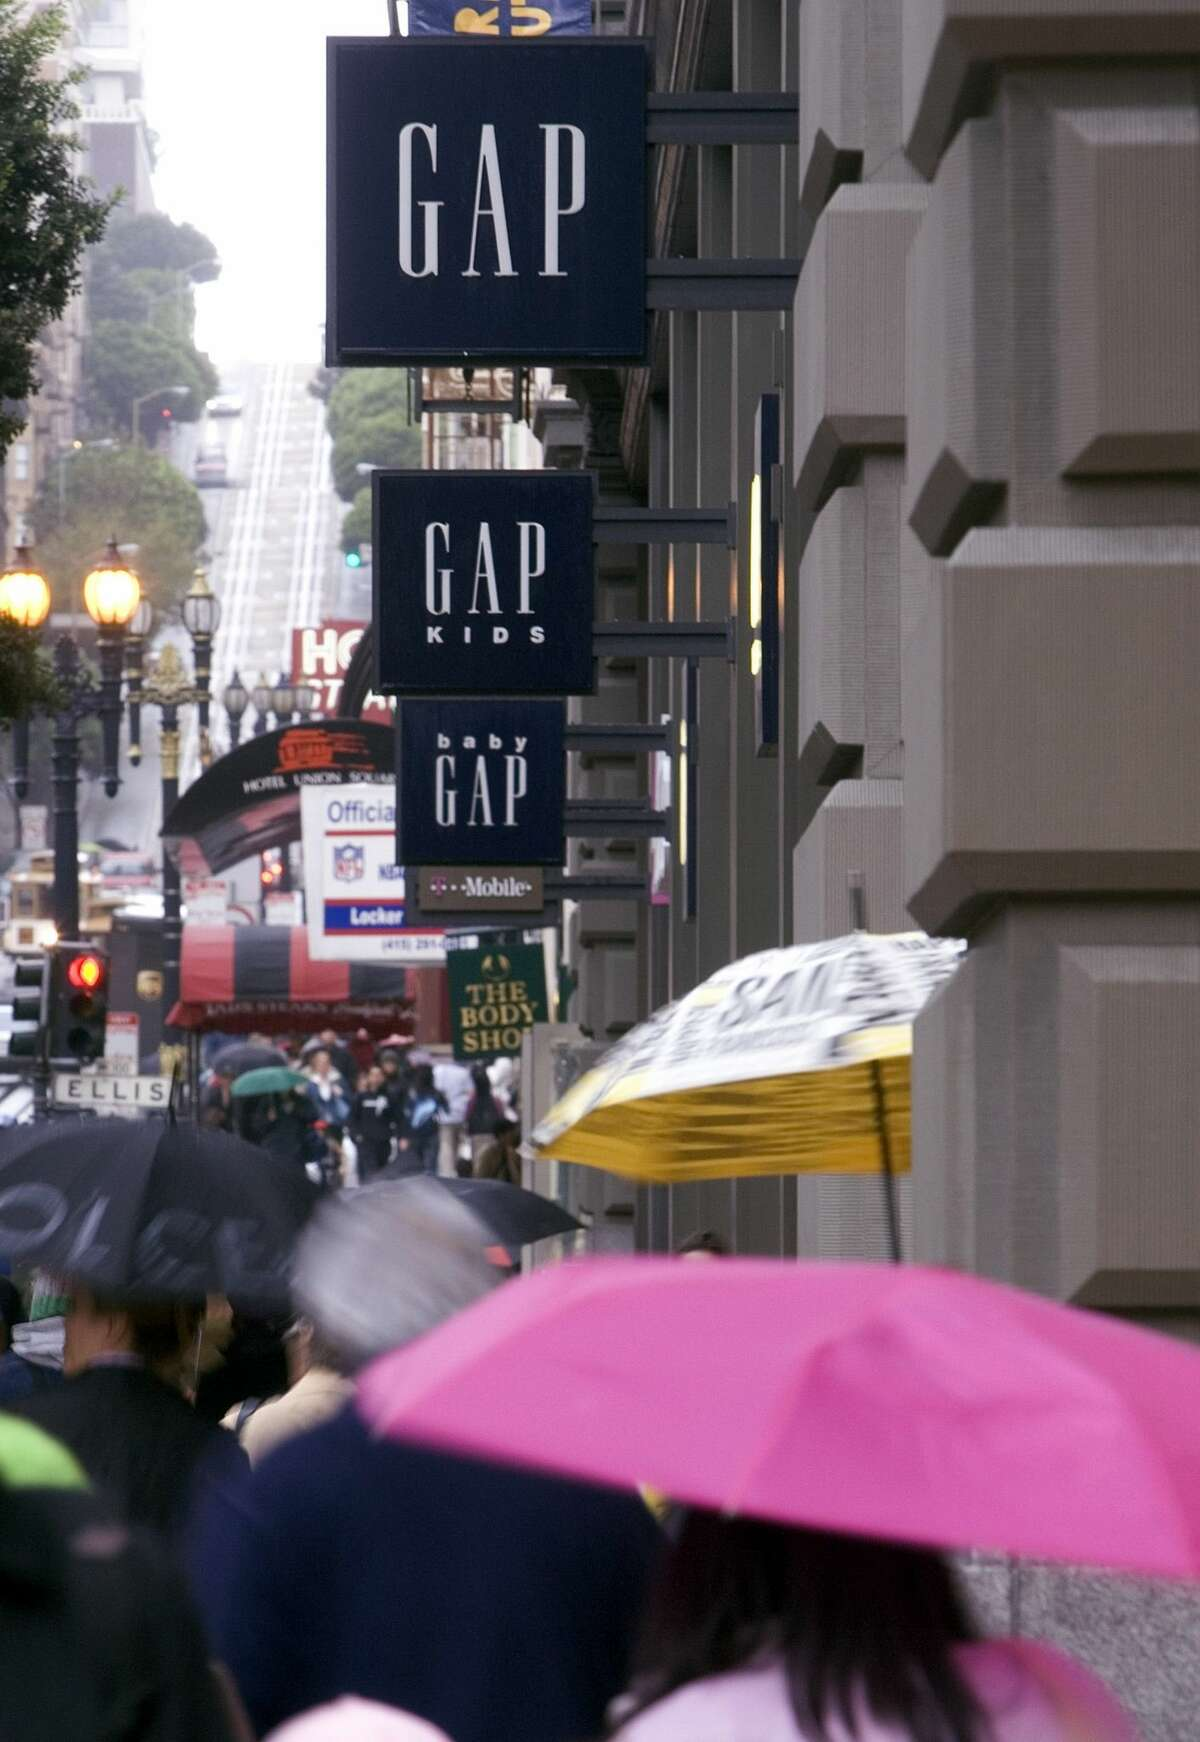 People walk past the Gap store on Market street and Powell street on November 2, 2006 in San Francisco, California. Gap has recently posted a drop in same-store sales at 7 percent for the month of October.